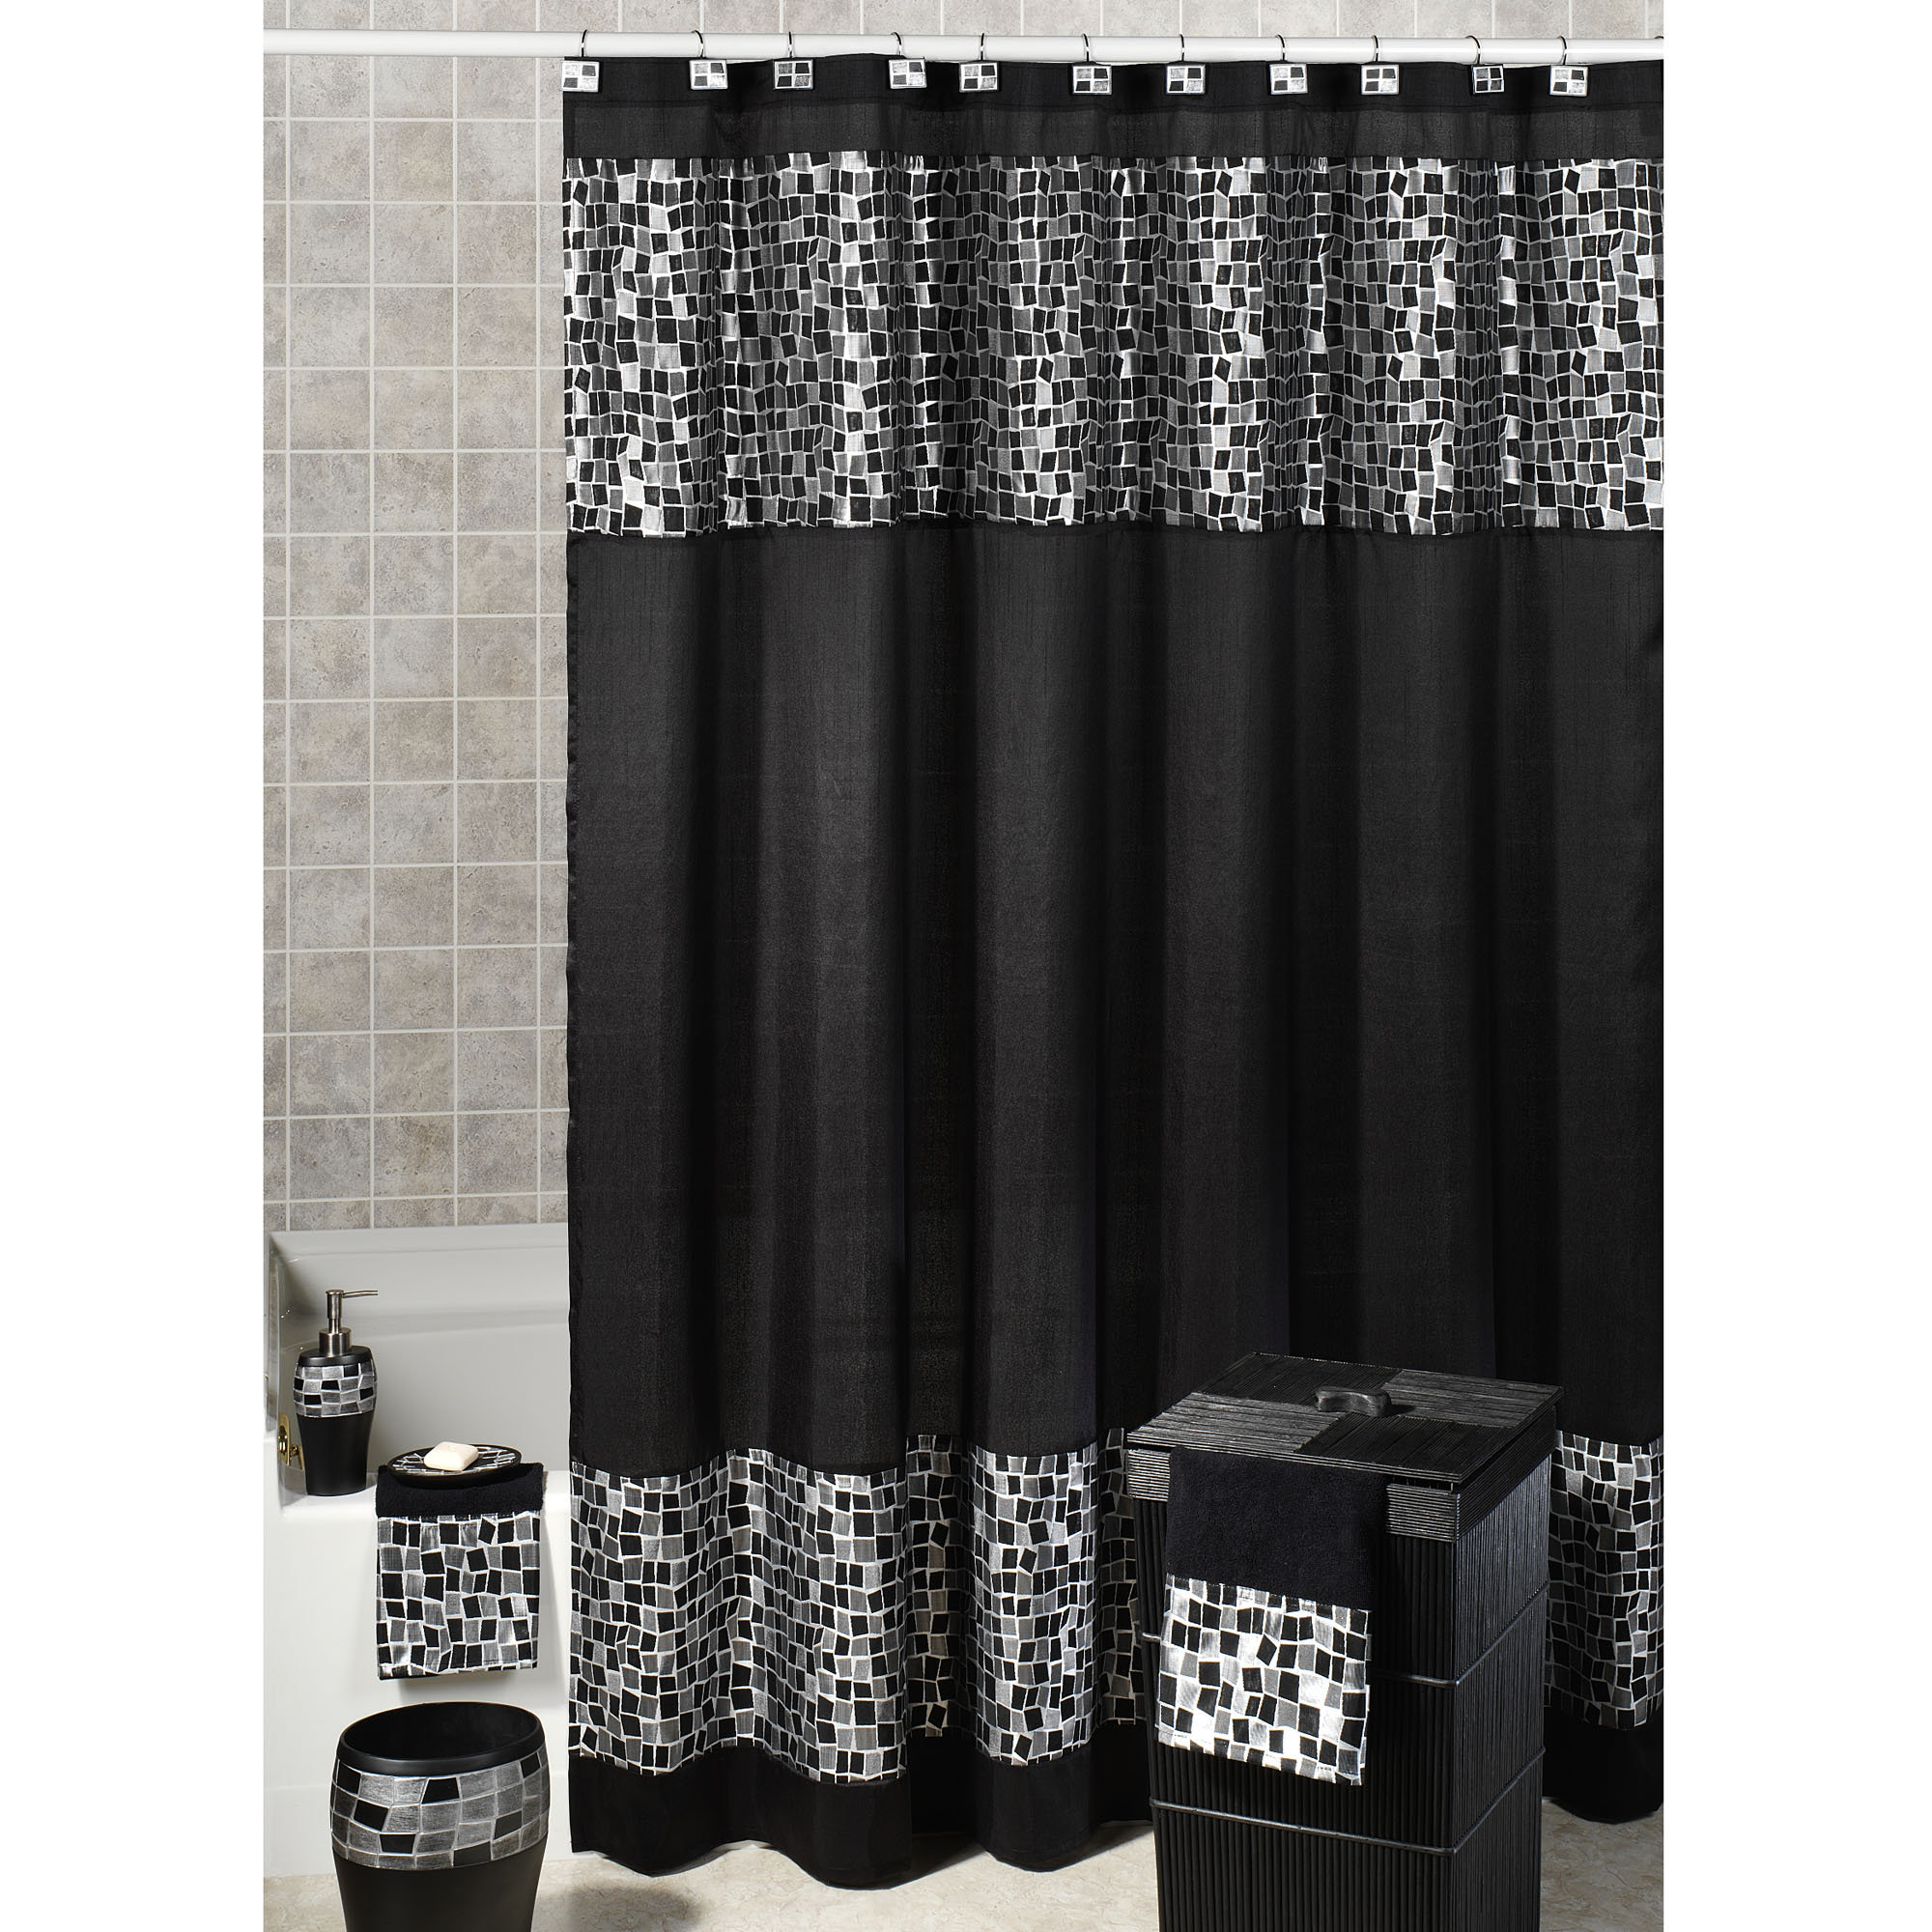 Decor Beautiful Kmart Curtains For Home Decoration Ideas Nysben inside measurements 2000 X 2000